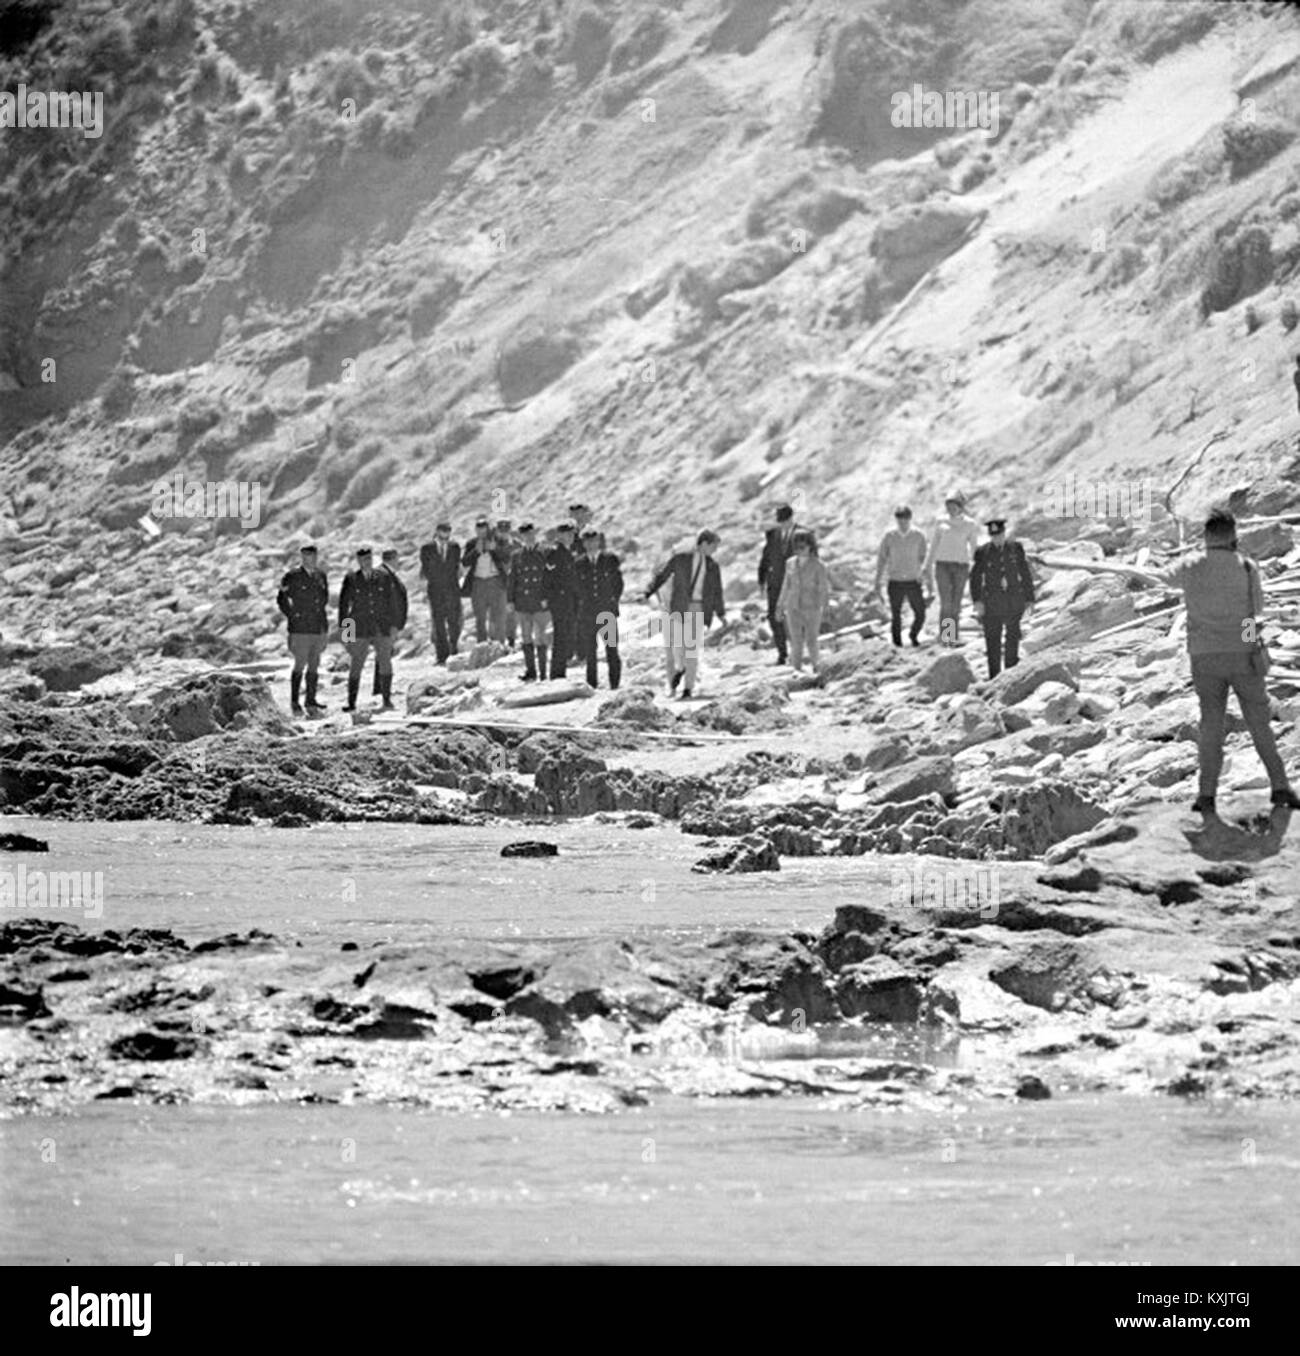 Searchers combing Cheviot Beach after Holt's disappearance, Harold Holt, Harold Edward Holt (5 August 1908 – - Stock Image